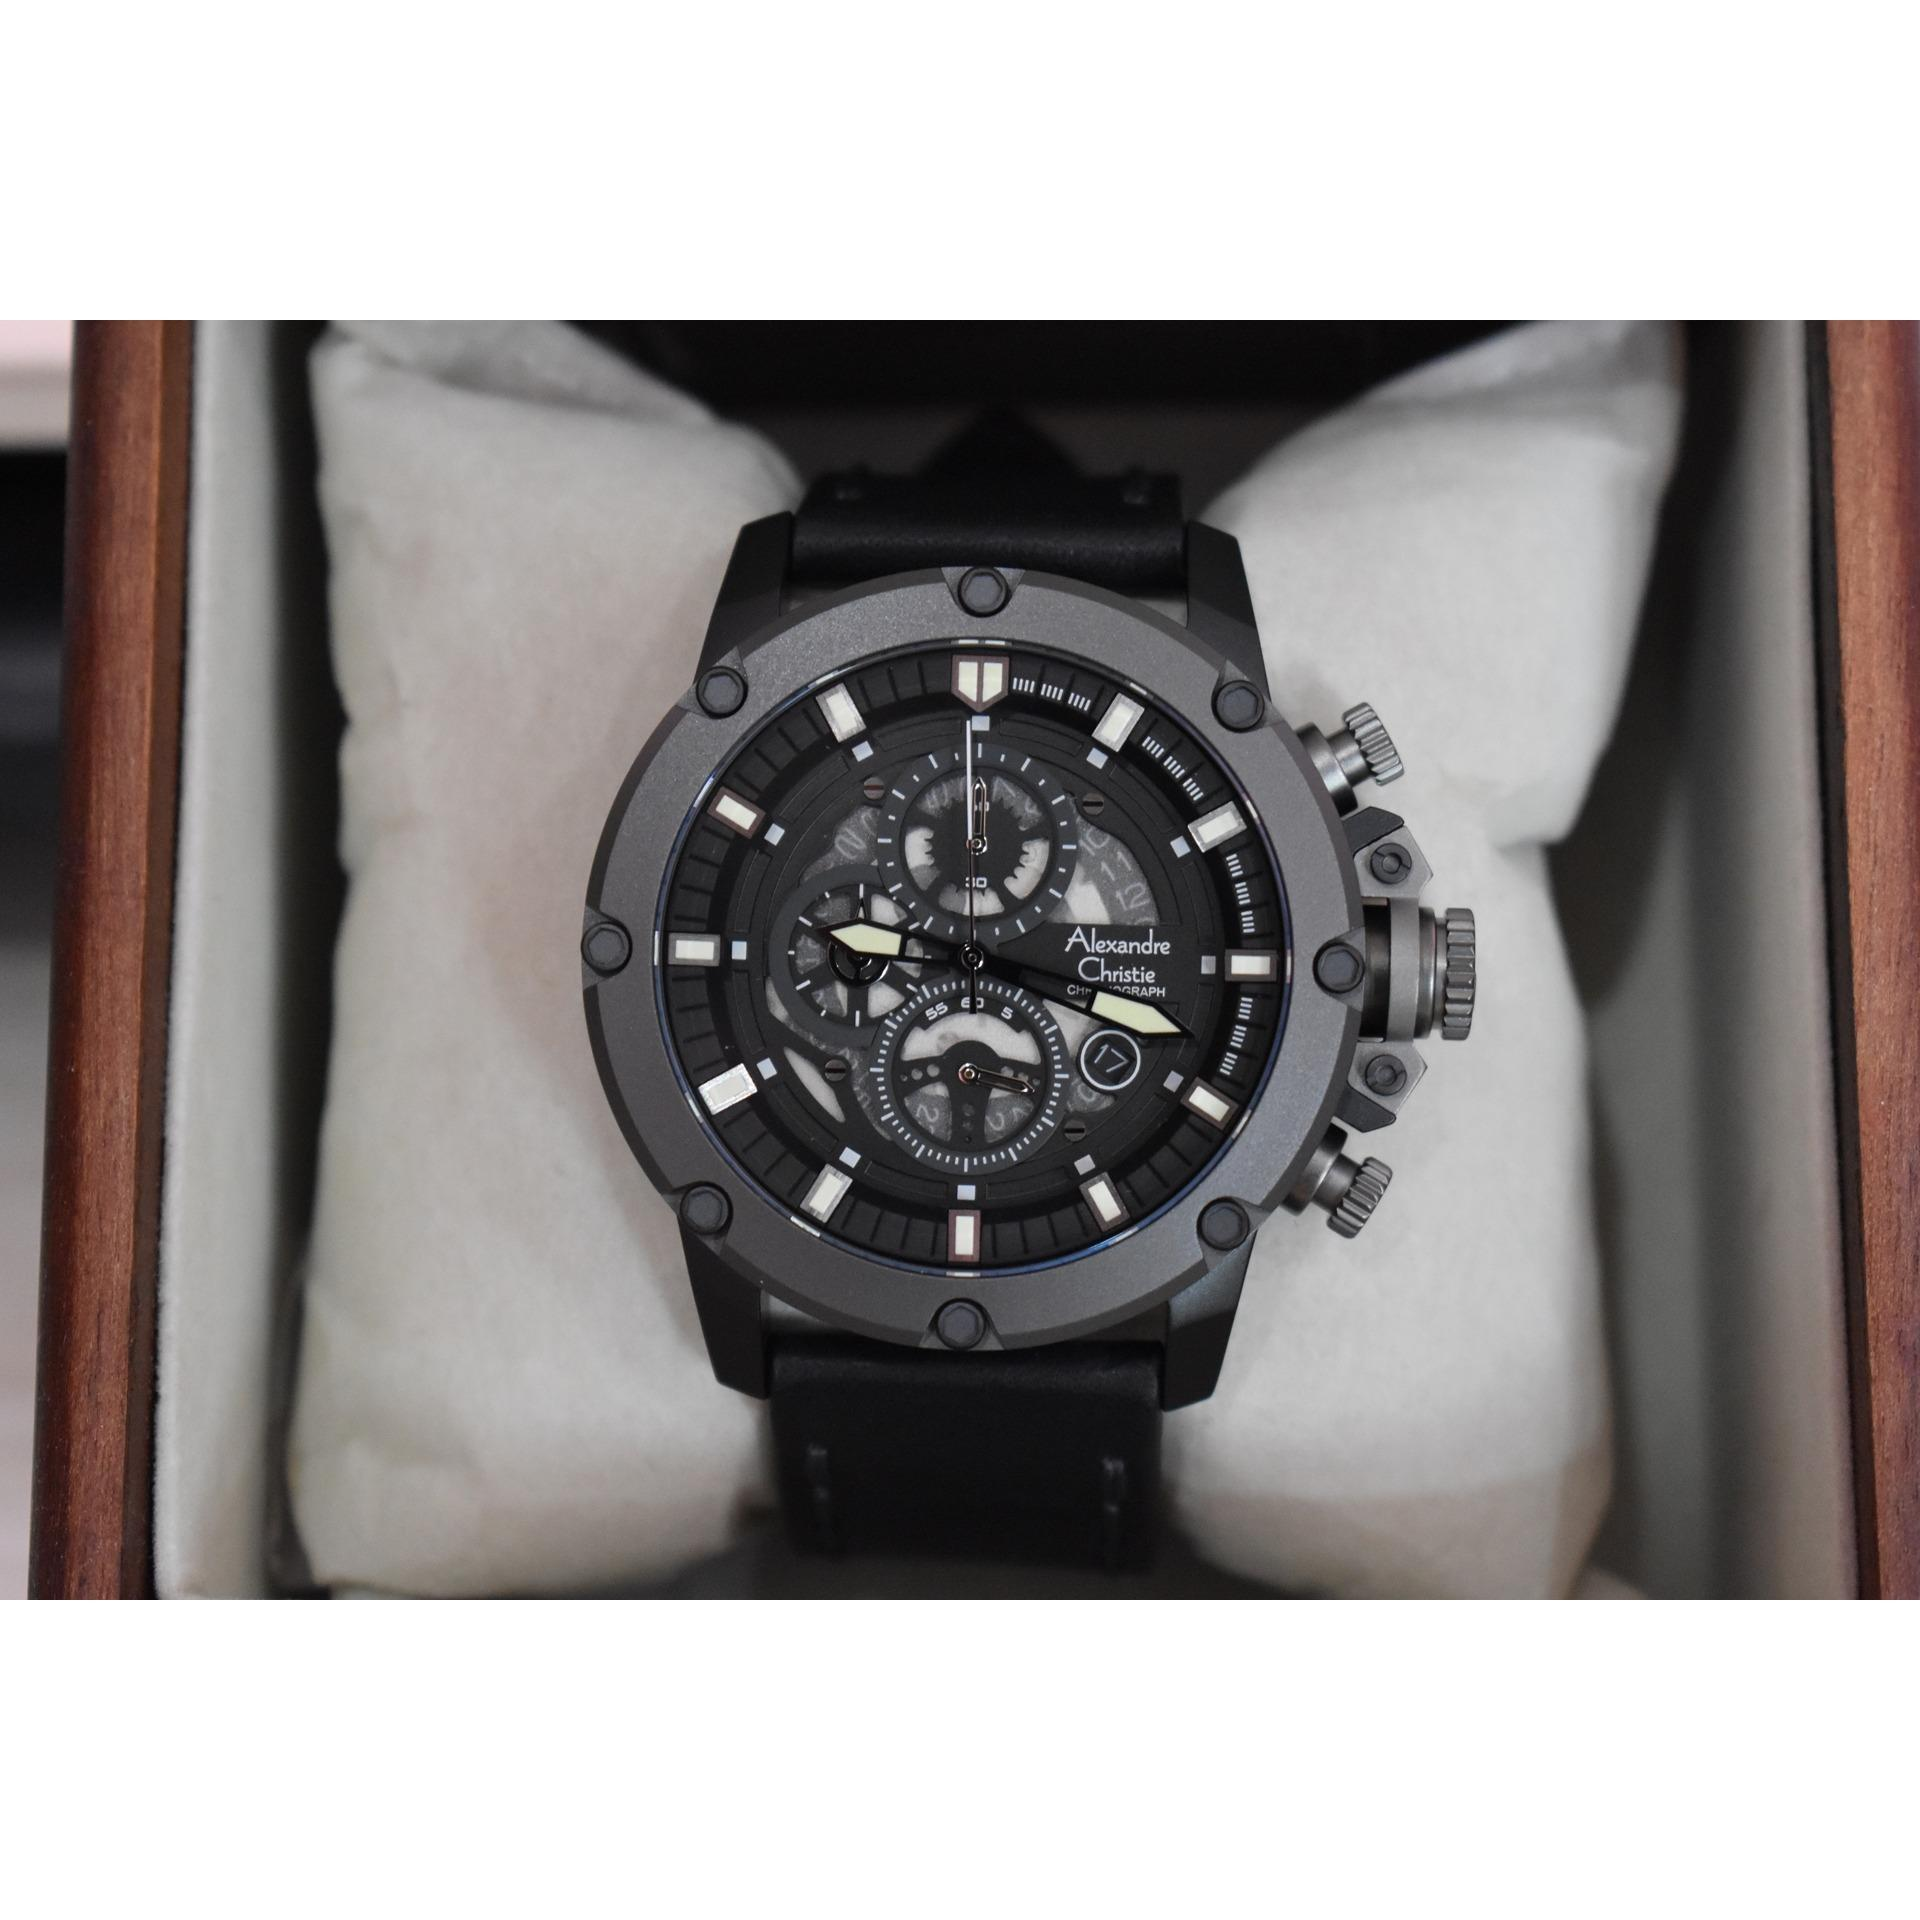 Alexandre Christie Ac6416mc Jam Tangan Pria Strap Leather Hitam 8440 Mslssba Silver Original Cowok Ac6416 Ac 6416 Mc Grey Black